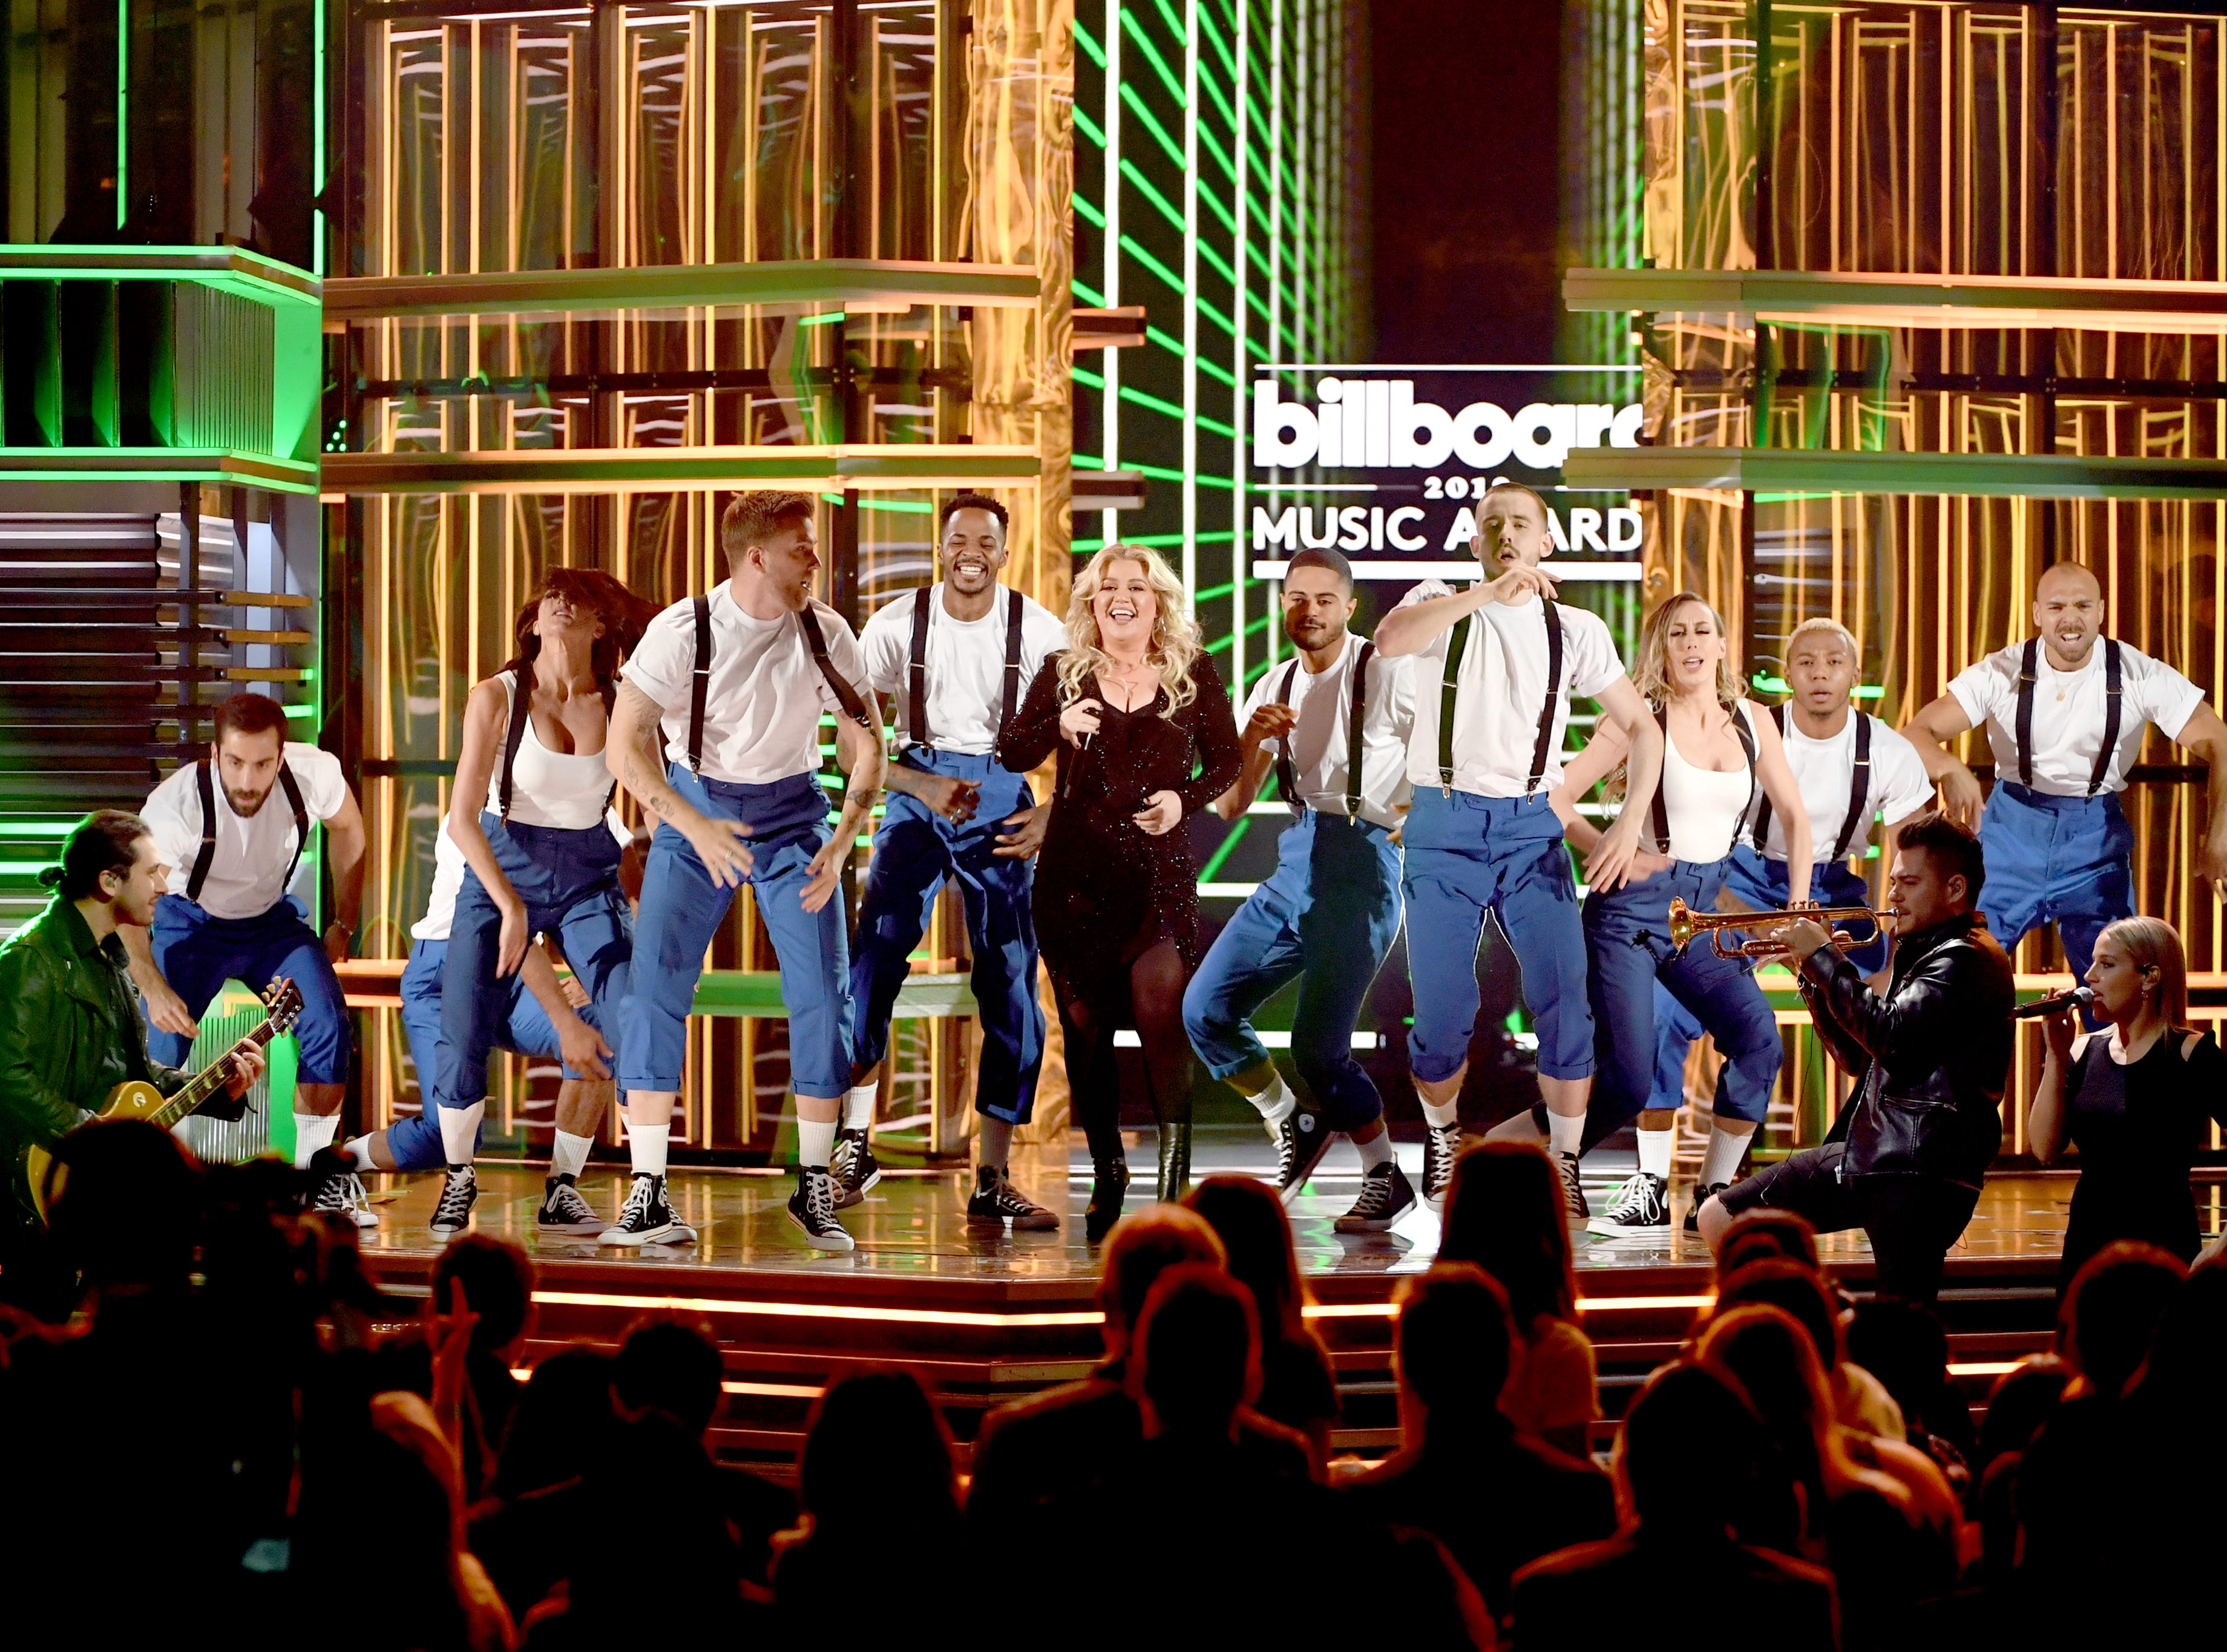 Host Kelly Clarkson (sixth from L) performs onstage during the 2019 Billboard Music Awards at MGM Grand Garden Arena on May 01, 2019 in Las Vegas, Nevada.